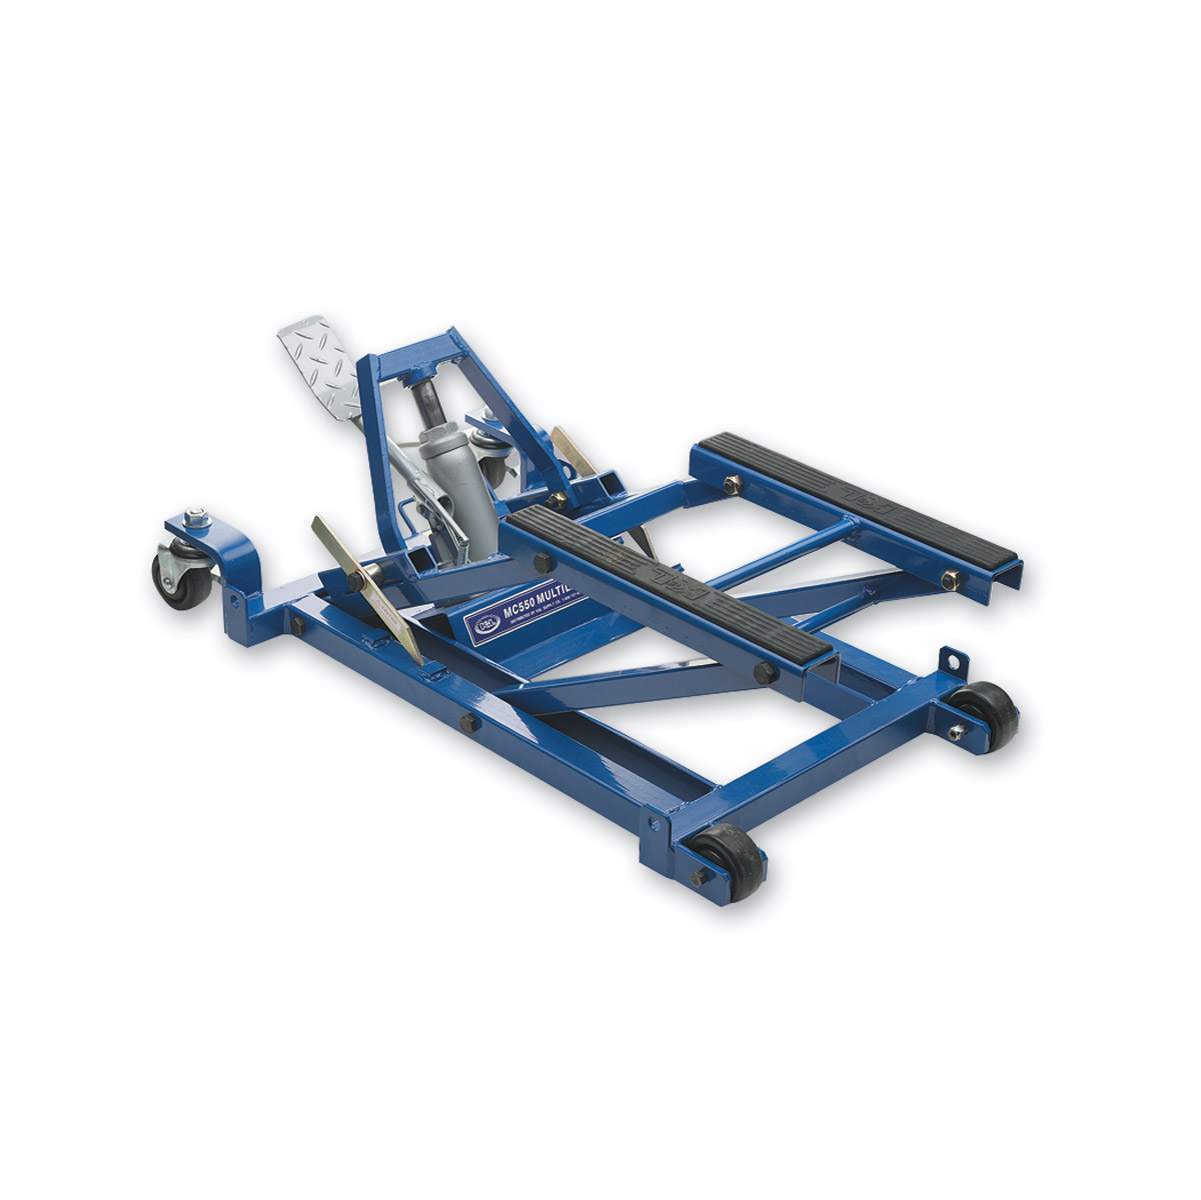 K&L Supply Co. Multi-Lift Motorcycle Lift